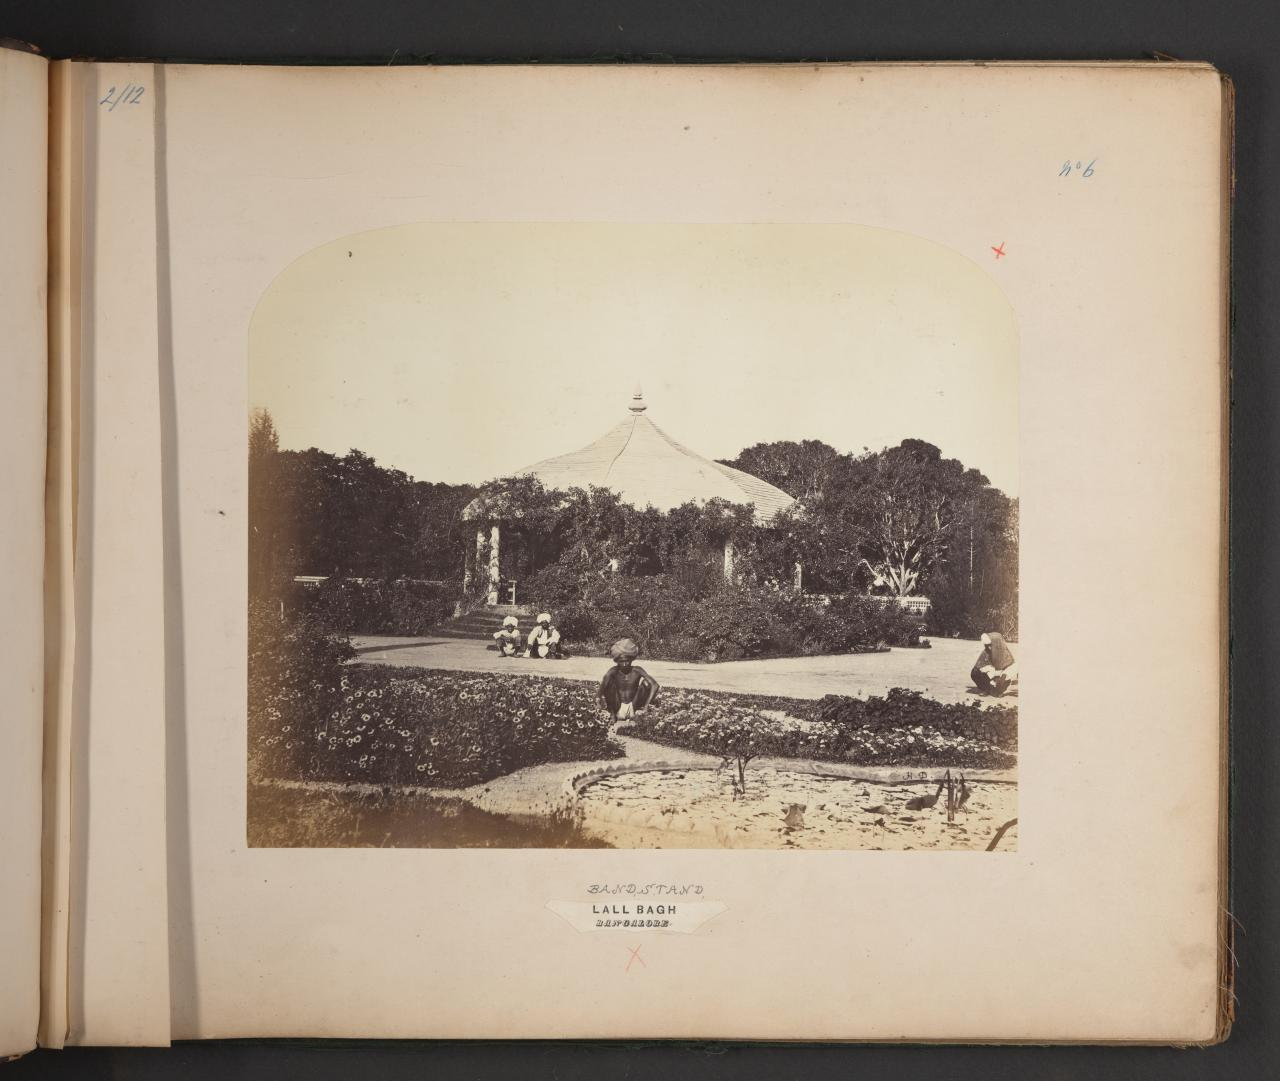 Bandstand, Lall Bagh, Bangalore